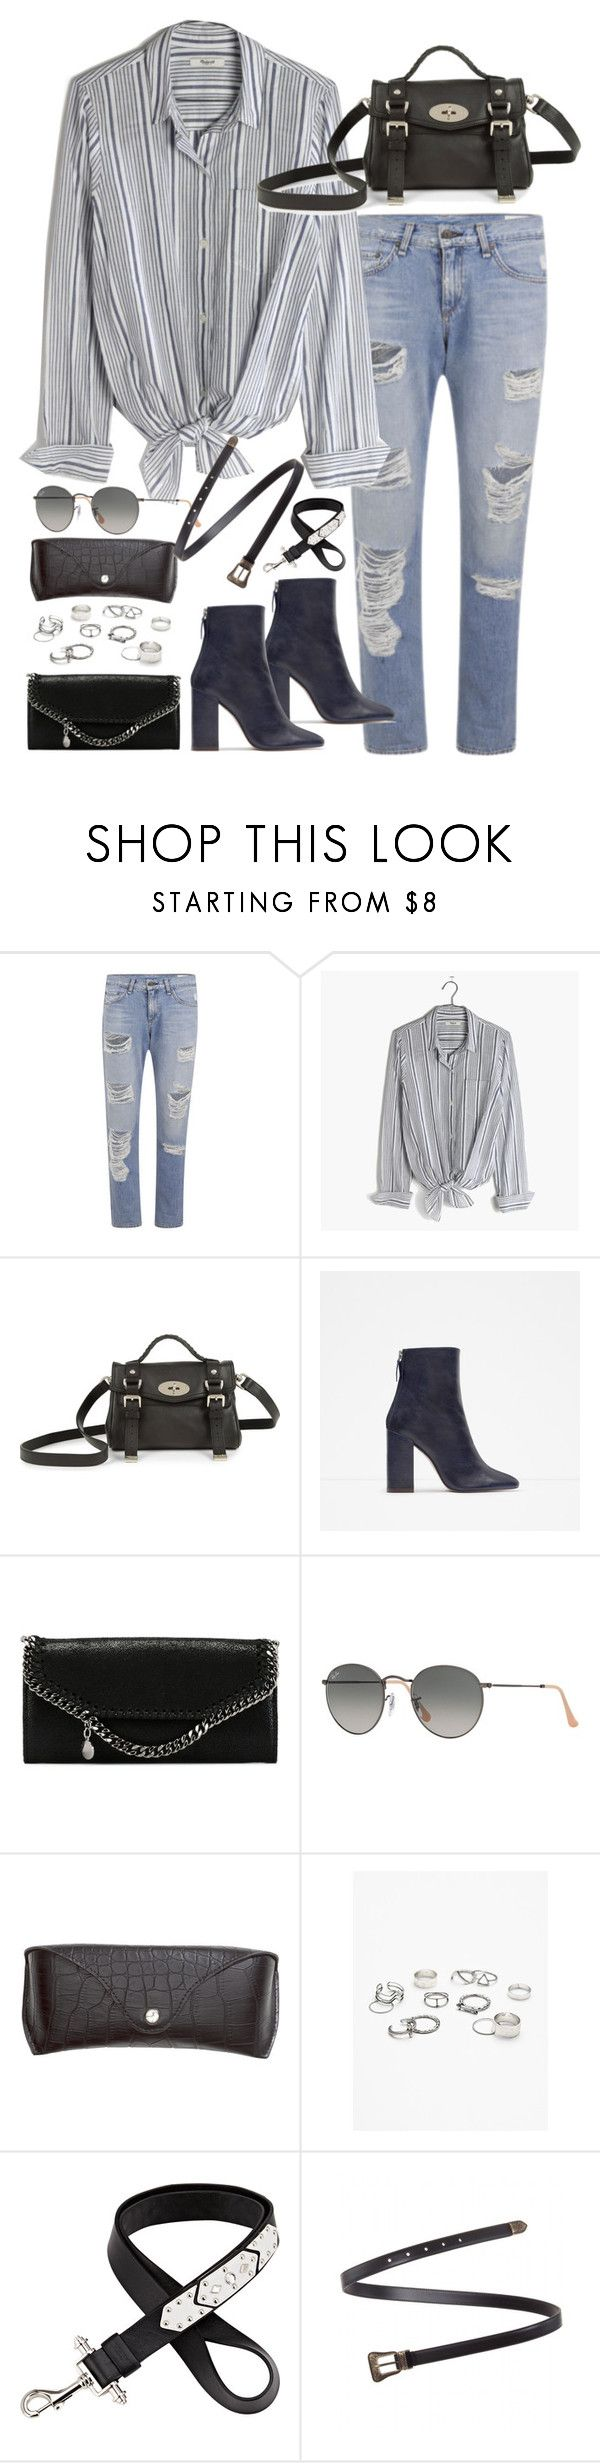 """Untitled#4267"" by fashionnfacts ❤ liked on Polyvore featuring rag & bone, Madewell, Mulberry, Zara, STELLA McCARTNEY, Ray-Ban, H&M, Free People, Givenchy and Yves Saint Laurent"